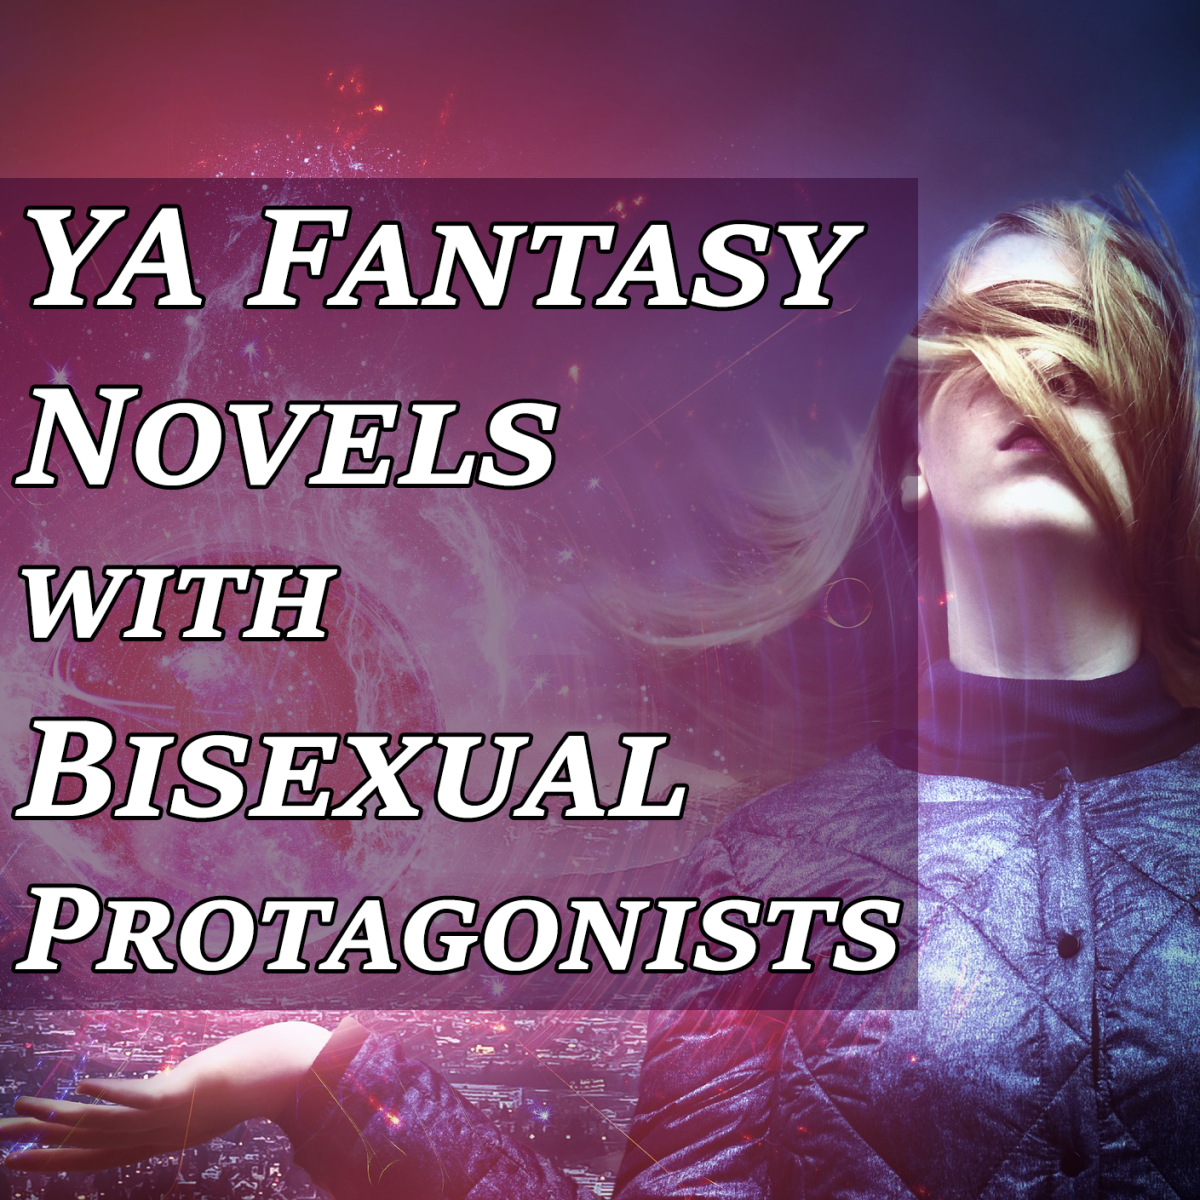 6 YA Fantasy Novels With Bisexual Protagonists